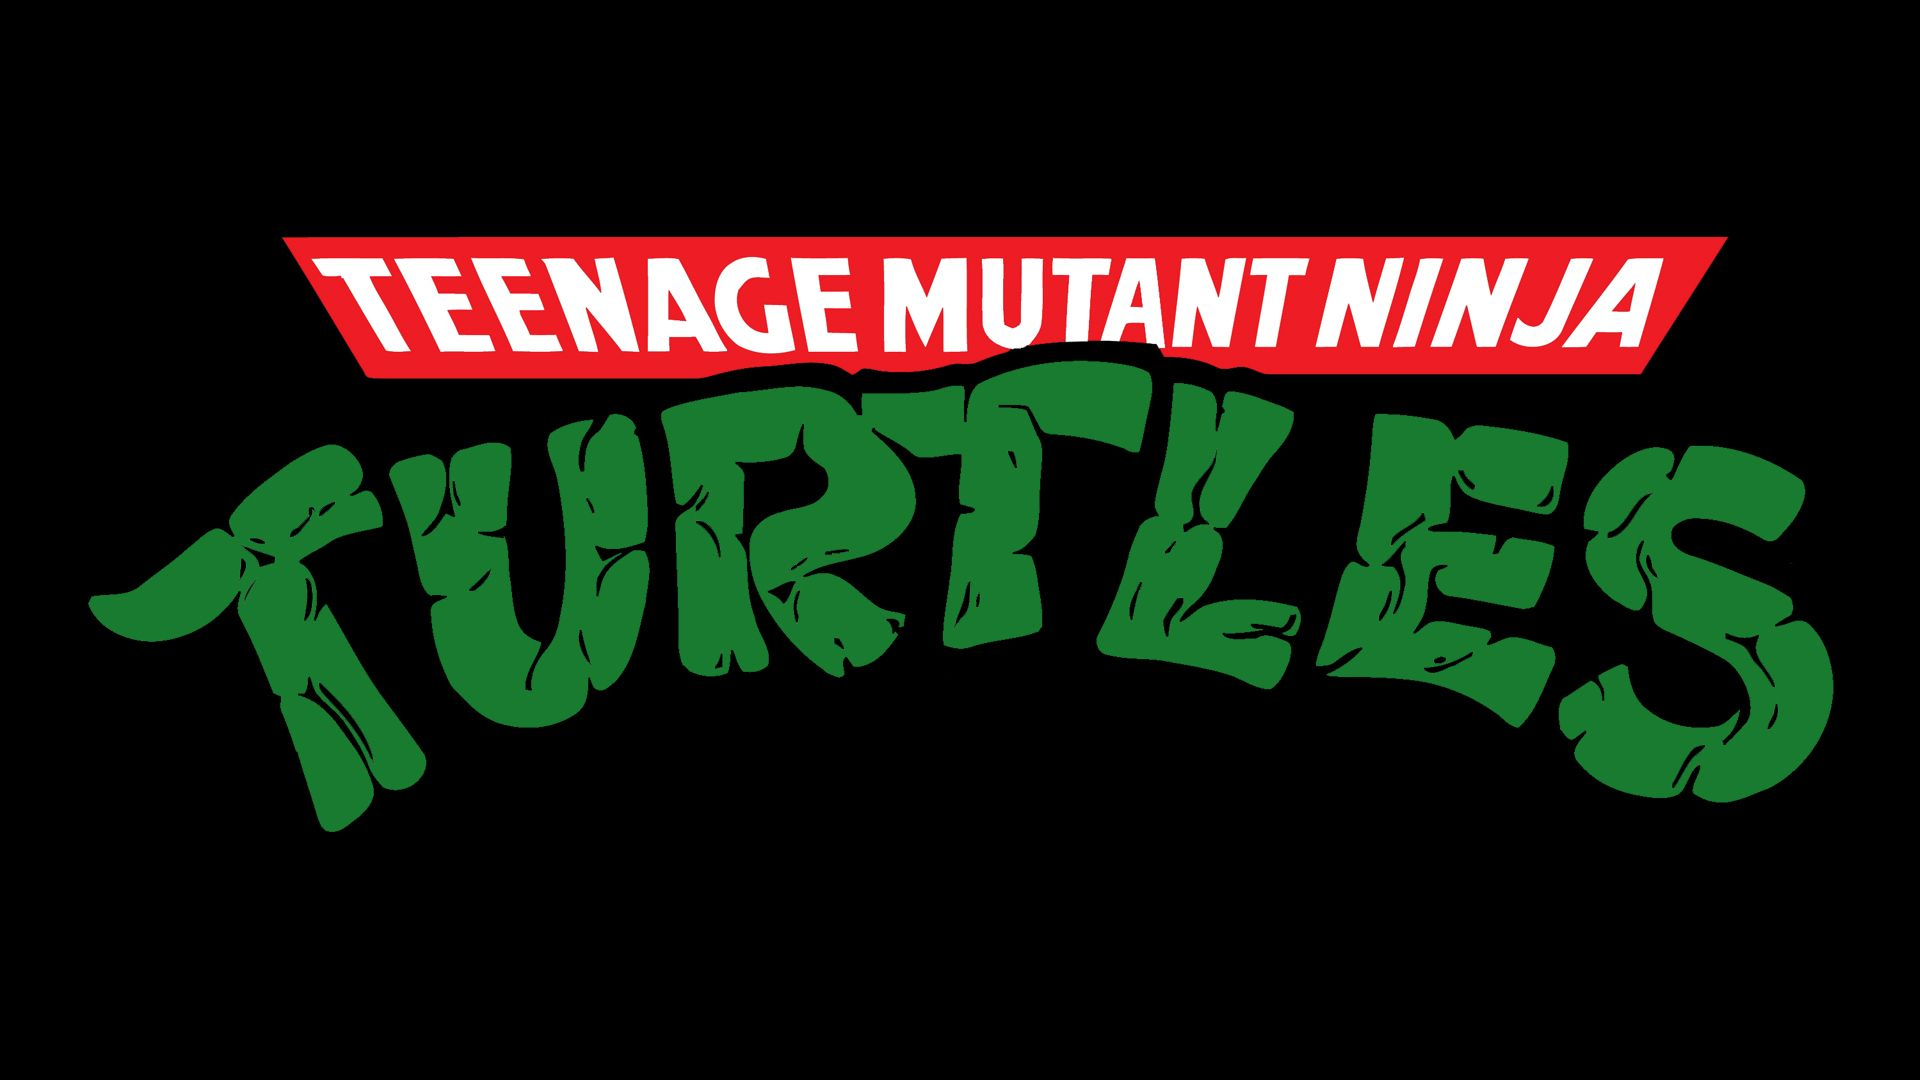 Teenage Mutant Ninja Turtles Logo Wallpaper Turtle